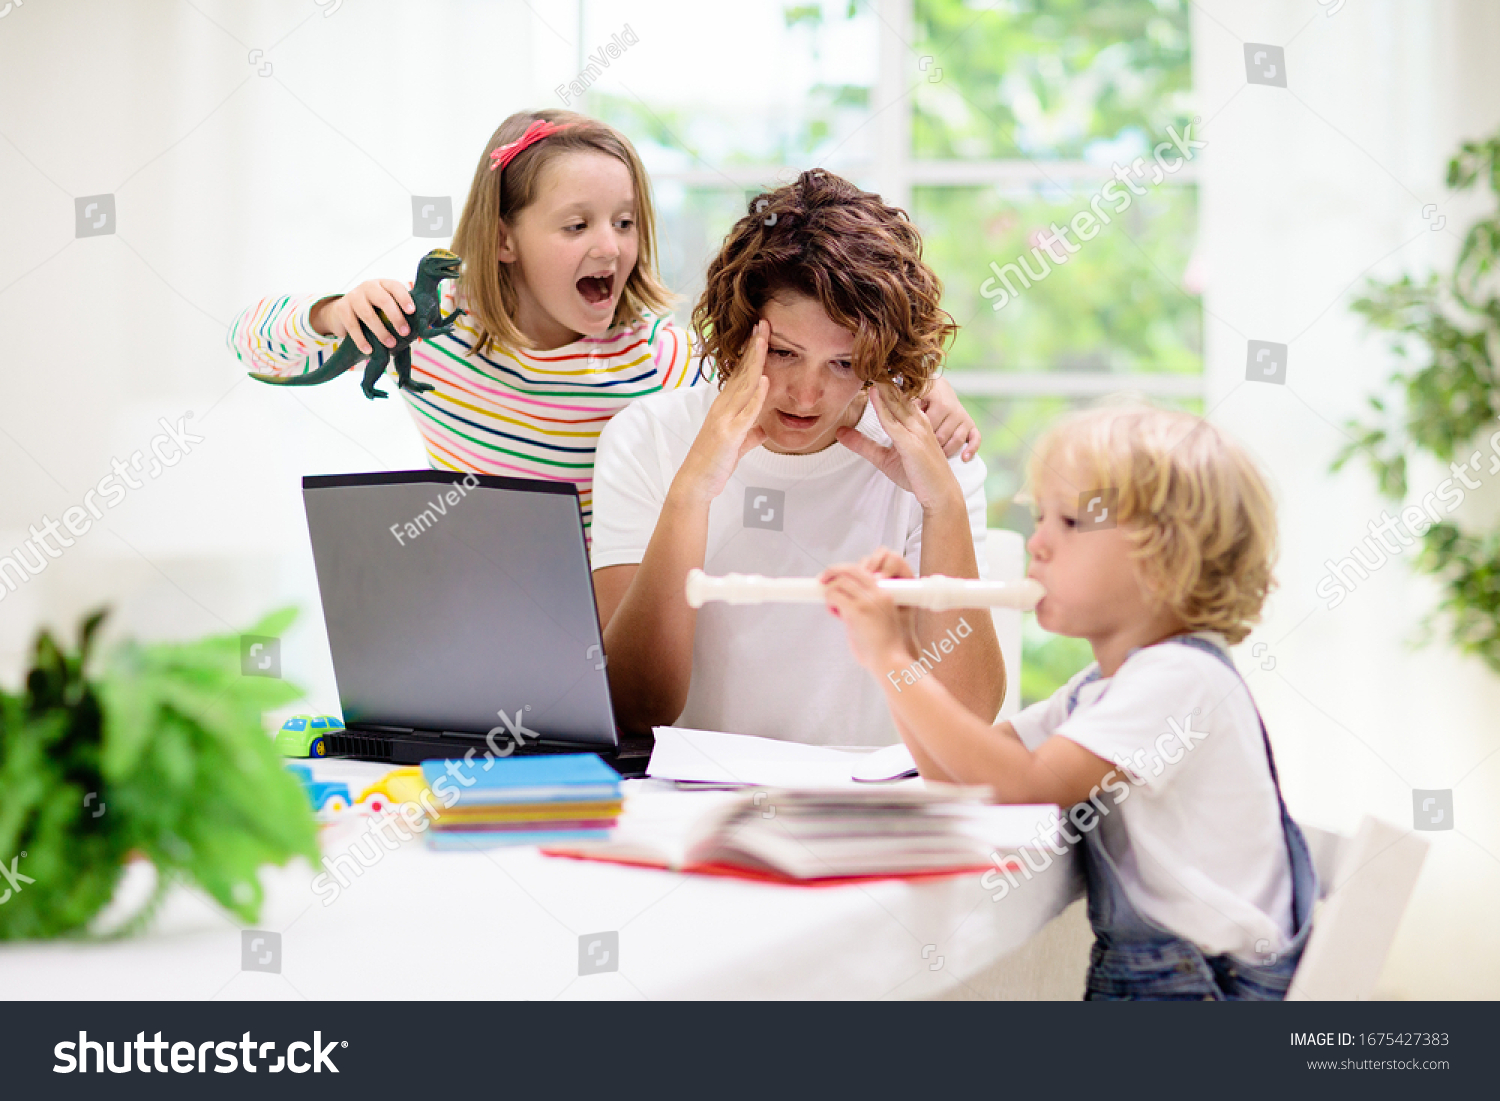 Mother working from home with kids. Quarantine and closed school during coronavirus outbreak. Children make noise and disturb woman at work. Homeschooling and freelance job. Boy and girl playing. #1675427383